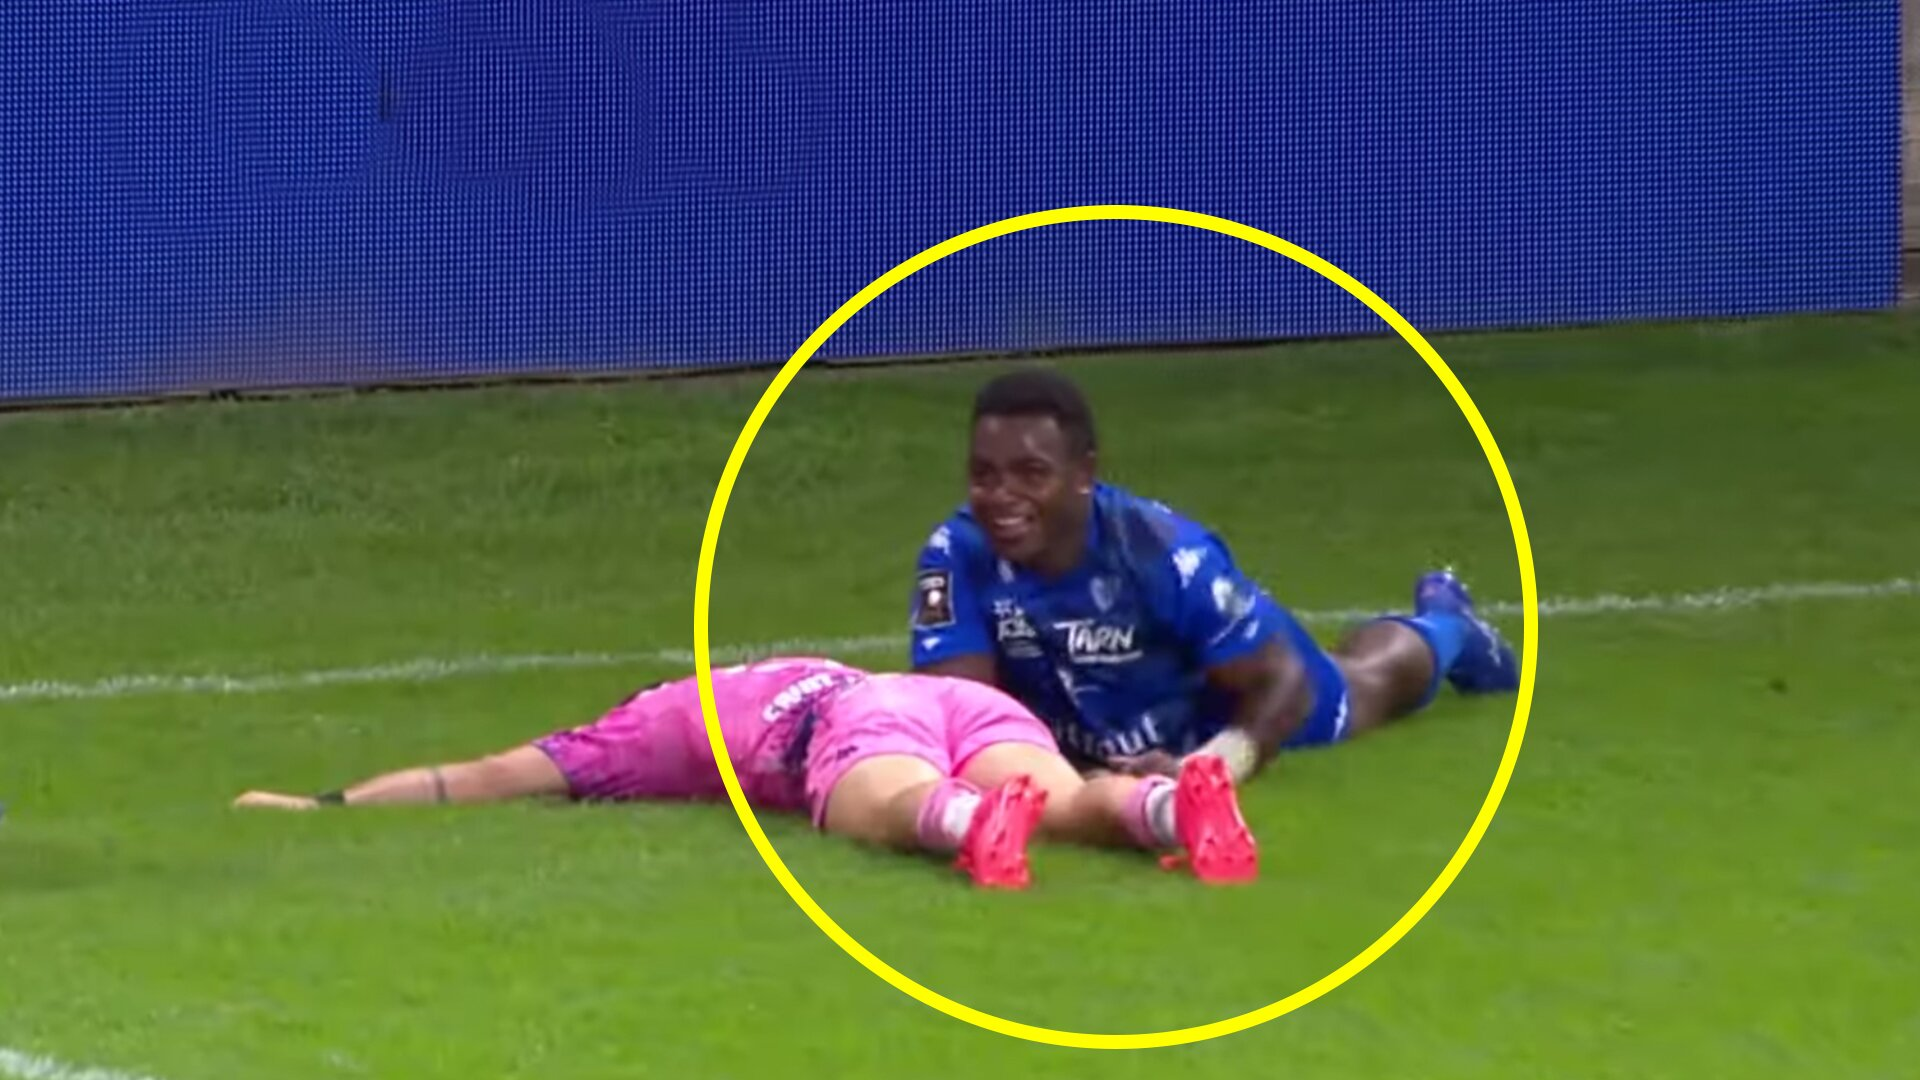 We witnessed one of the best ever try saving tackles in France last weekend